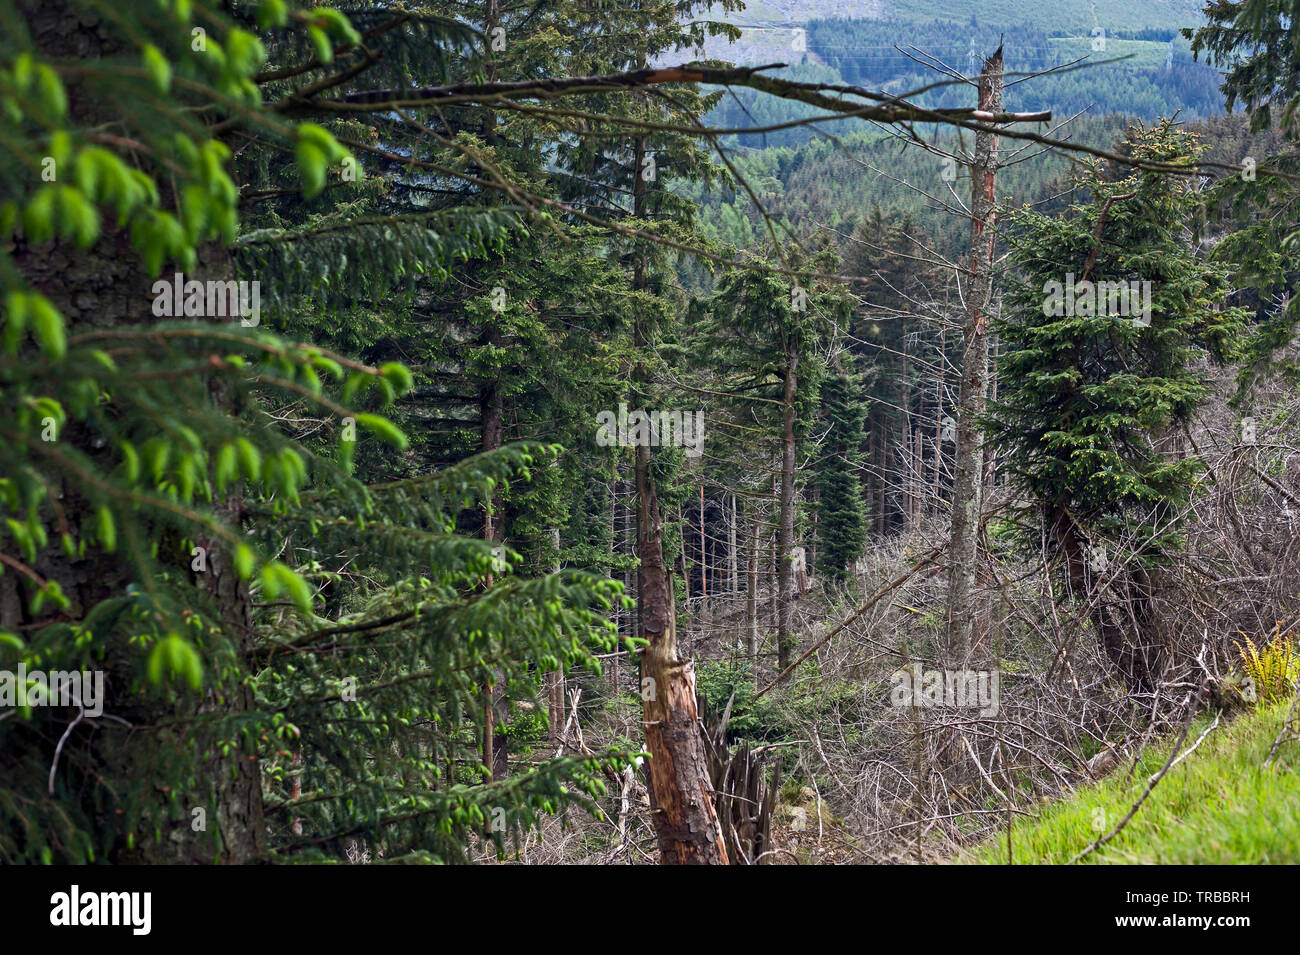 Storm damage to a conifer plantation in Angus, Scotland, UK. - Stock Image